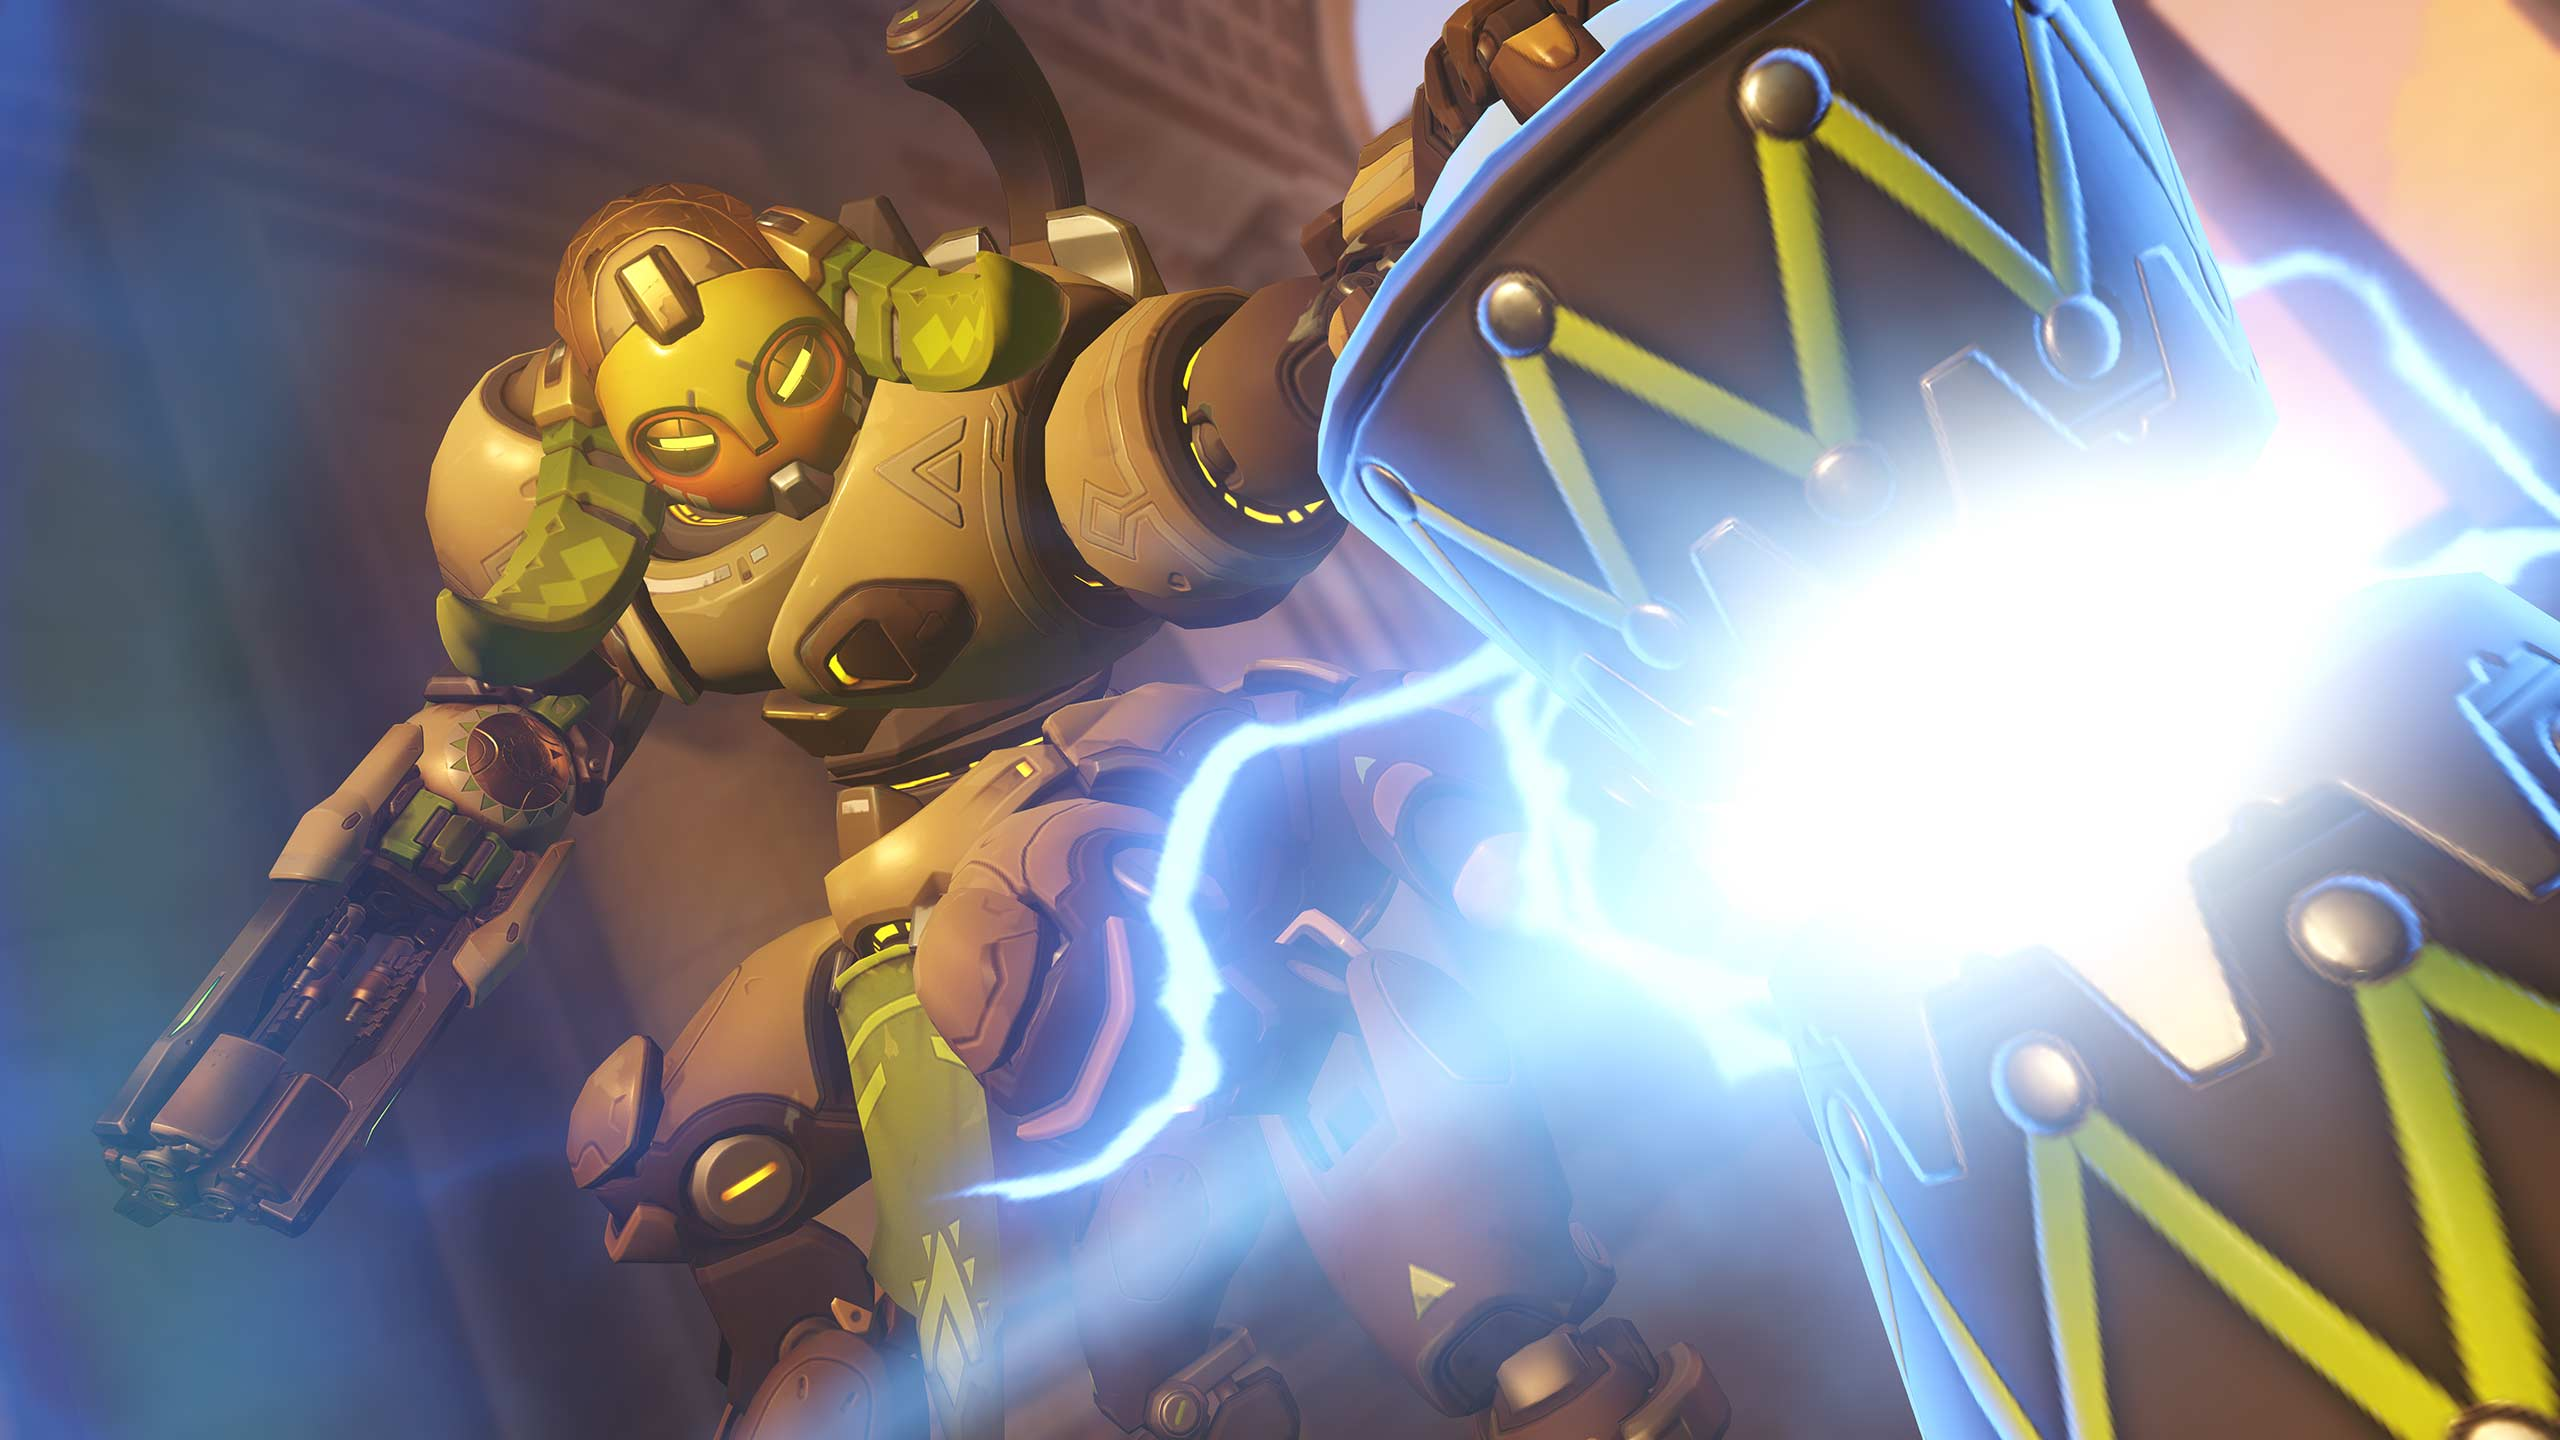 Orisa is one of the heroes of Tank Mode in Overwatch. (Image: Blizzard)